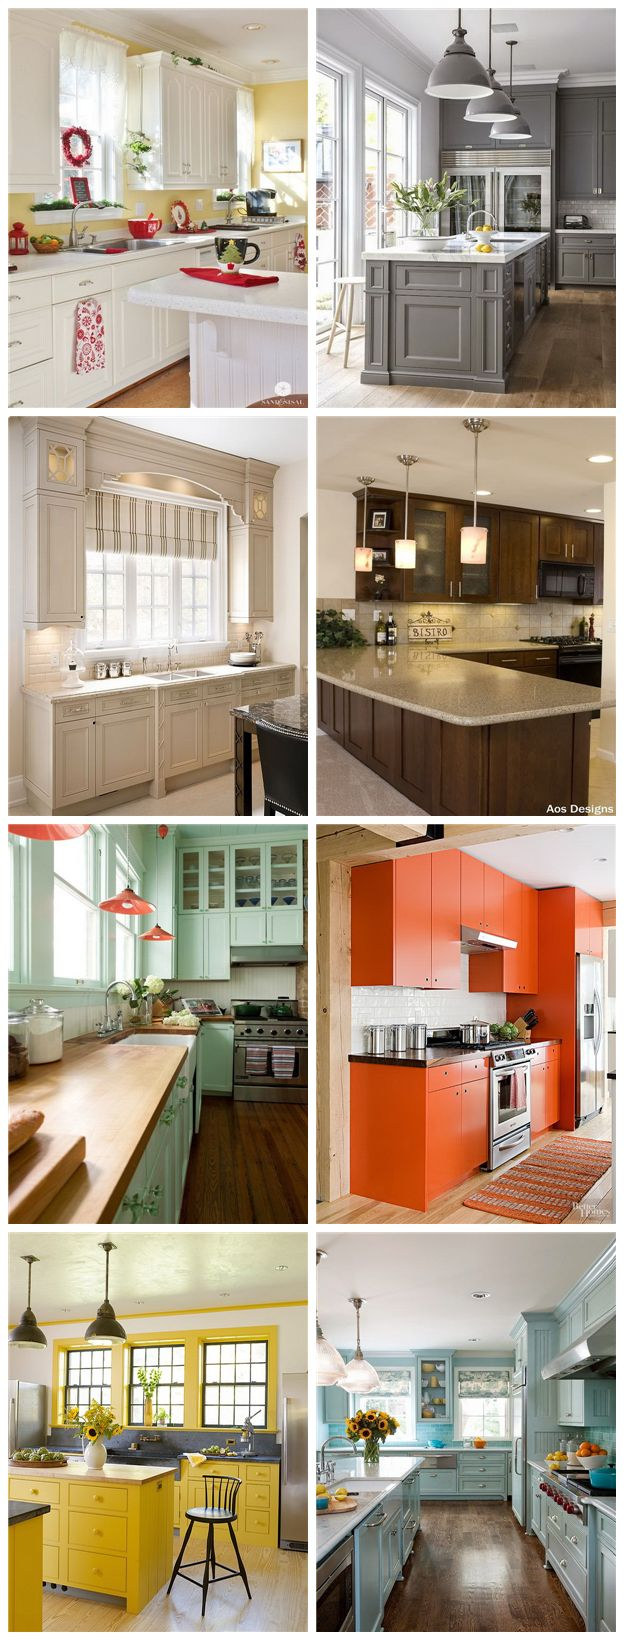 Design Collection Mesmerizing Bathroom Cabinet Paint Color Ideas 50 New Inspiration